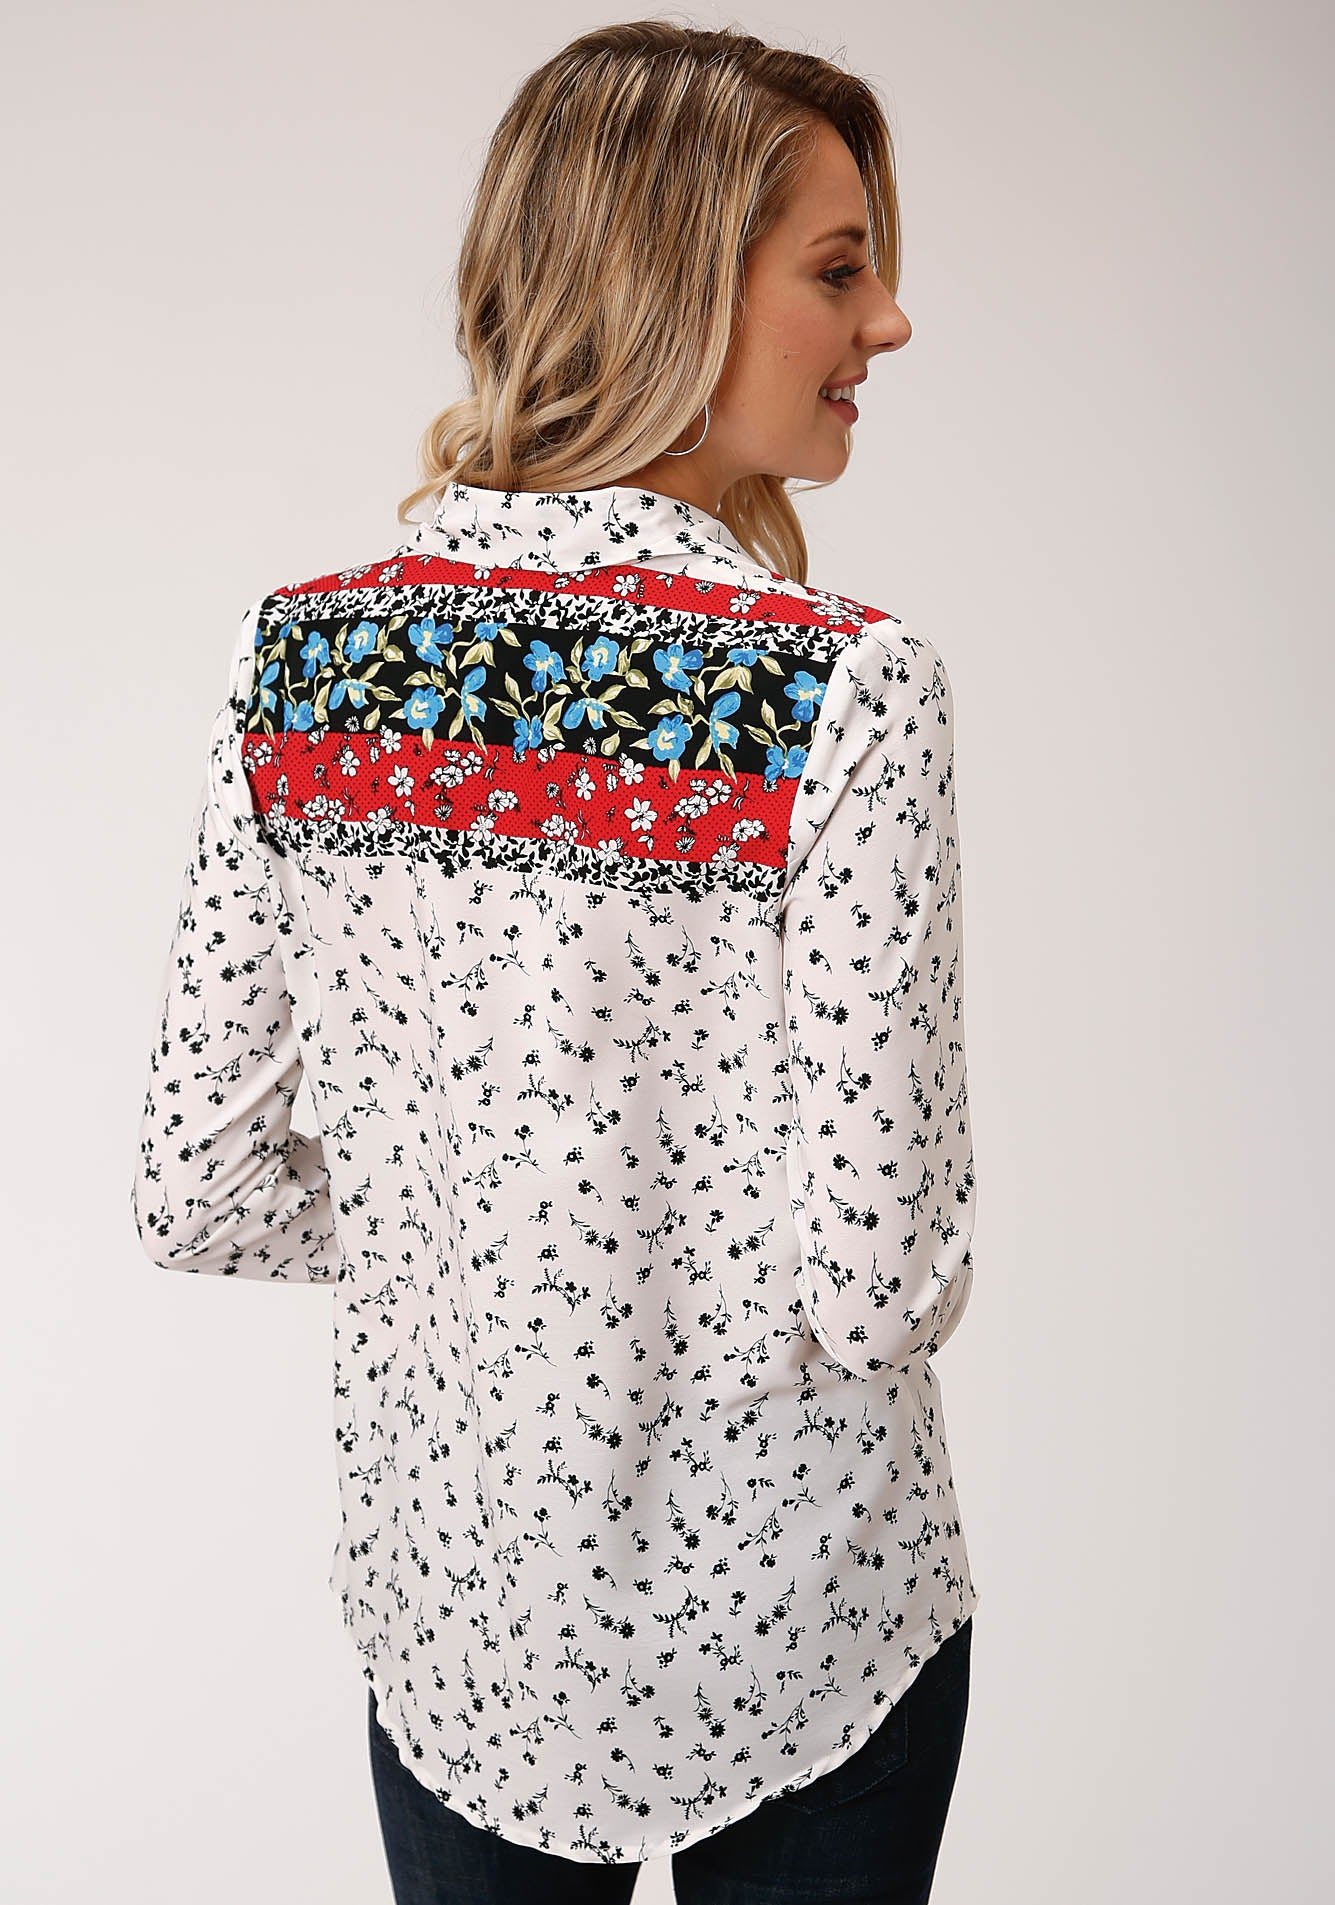 ROPER WOMENS WHITE 00223 POLY CREPE BORDER PRT SNAP SHIRT STUDIO WEST- WILD BLOSSOMS LONG SLEEVE